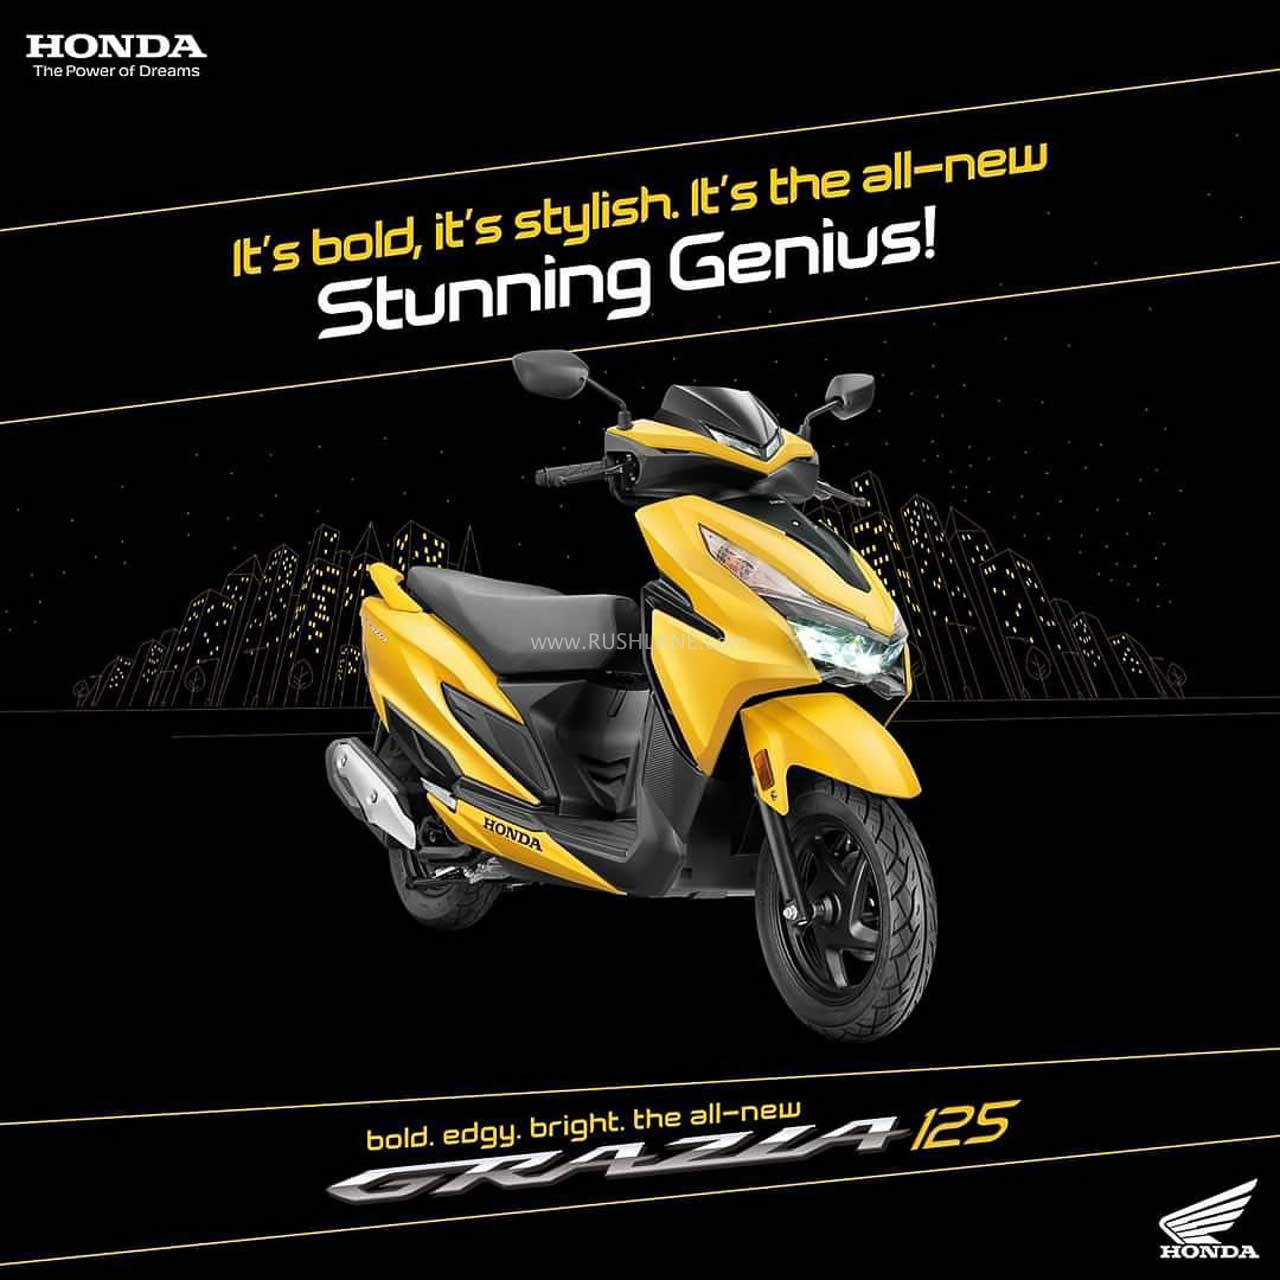 Honda Activa 125 based Grazia BS6 launch price Rs 11k more than BS4